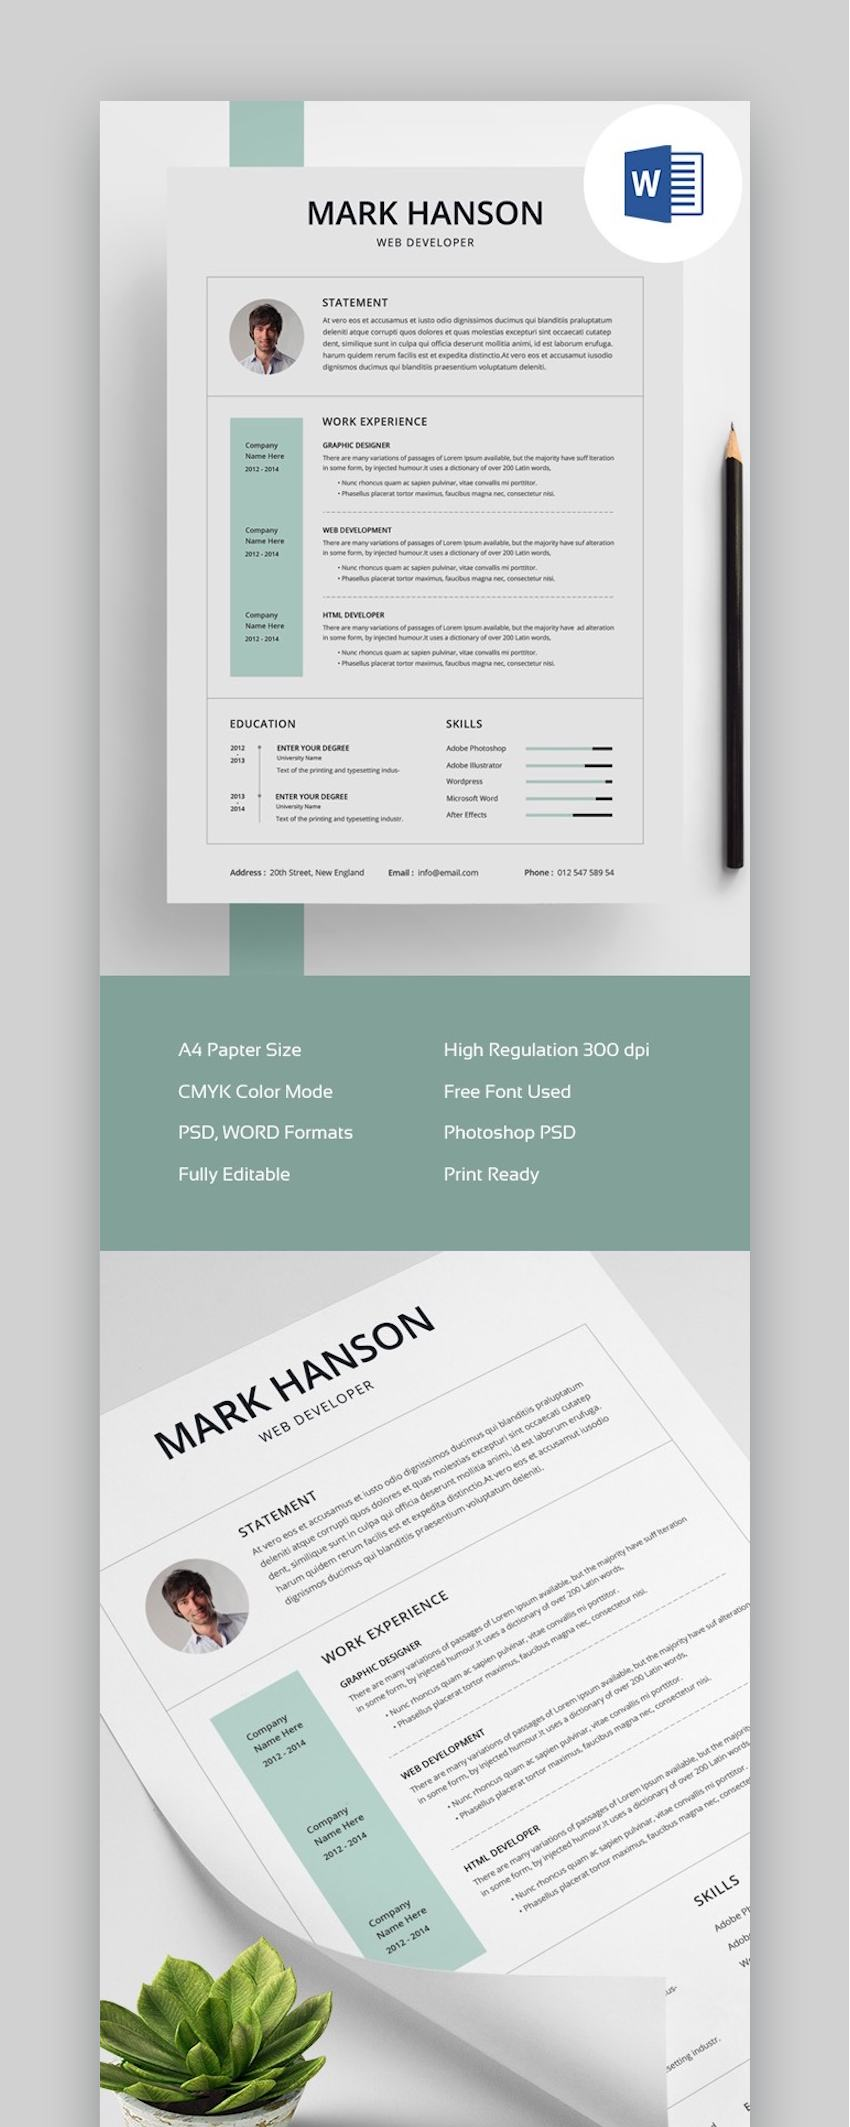 free creative resume templates word downloads for market env clean template final supply Resume Creative Market Resume Free